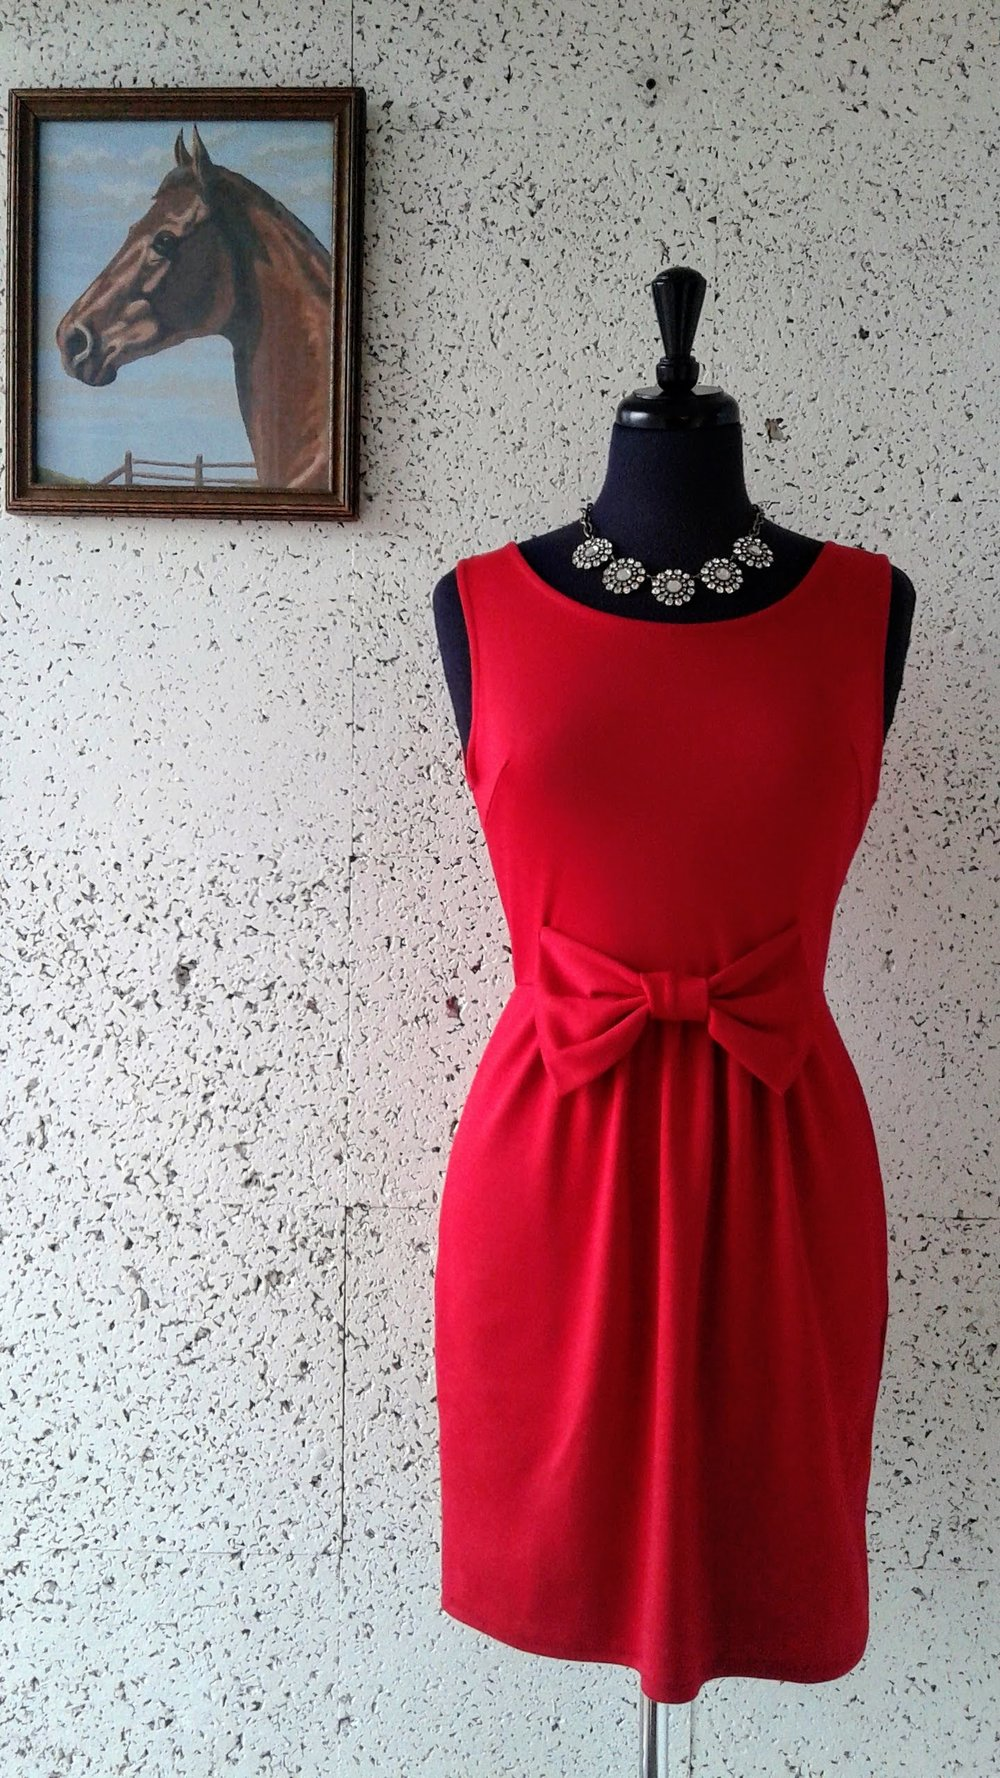 Everly  dress; Size M, $26. Necklace, $38